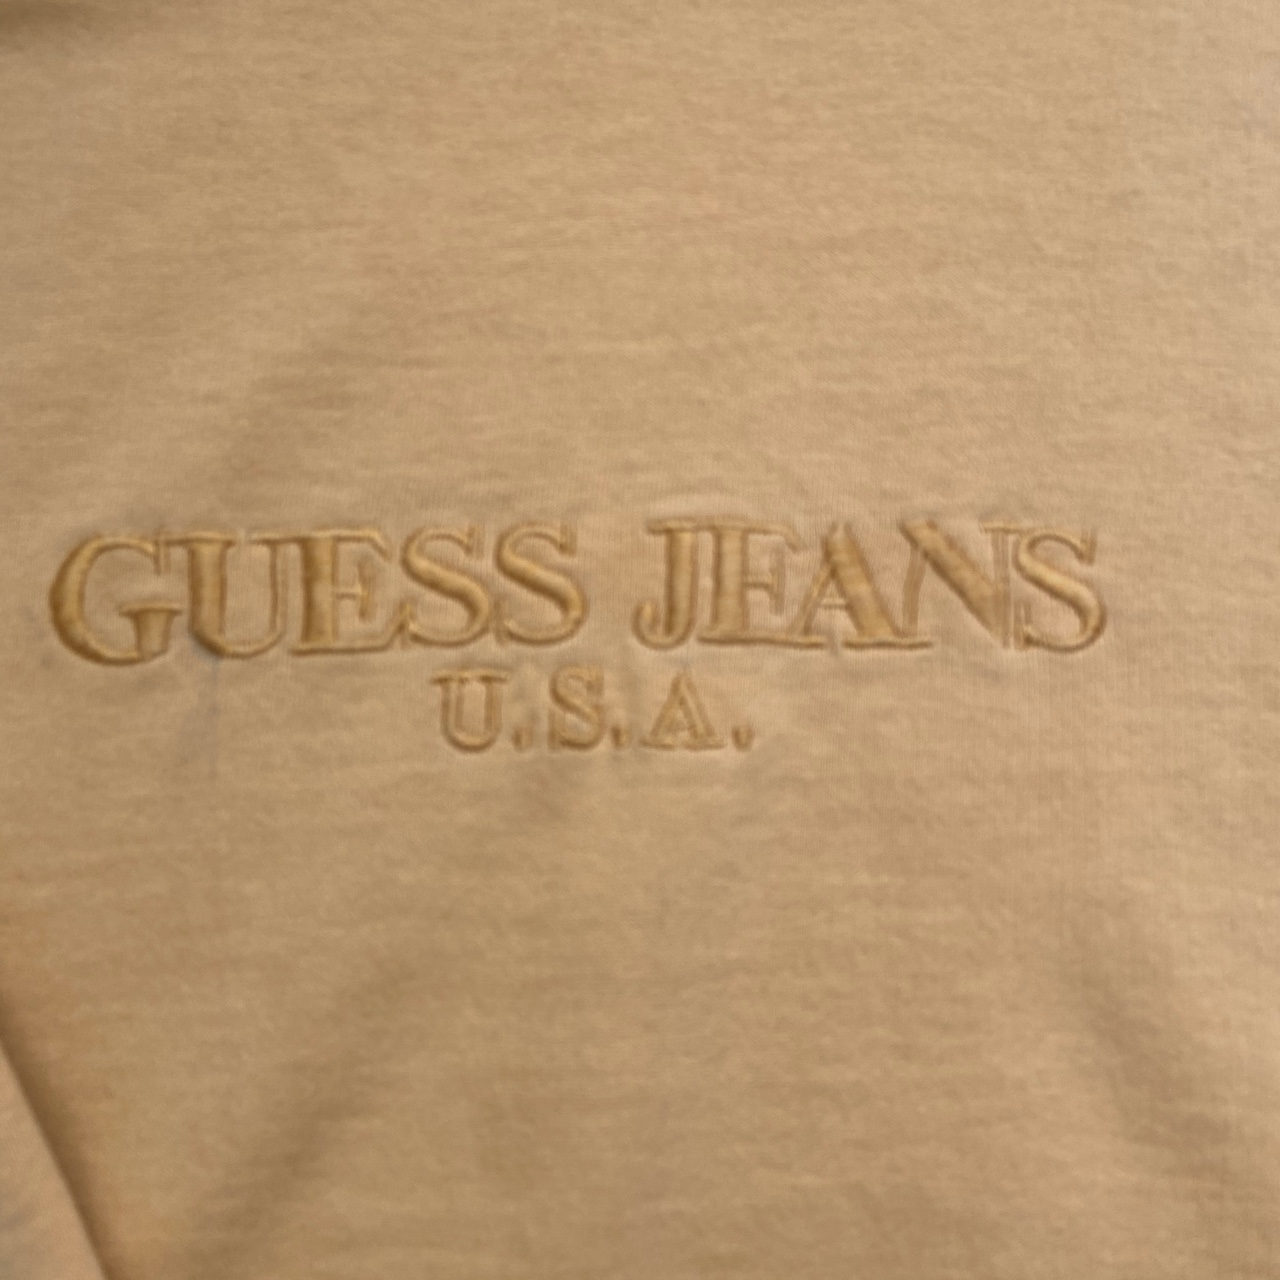 Product Image 2 - Vintage guess sweatshirt Authentic Yellow and